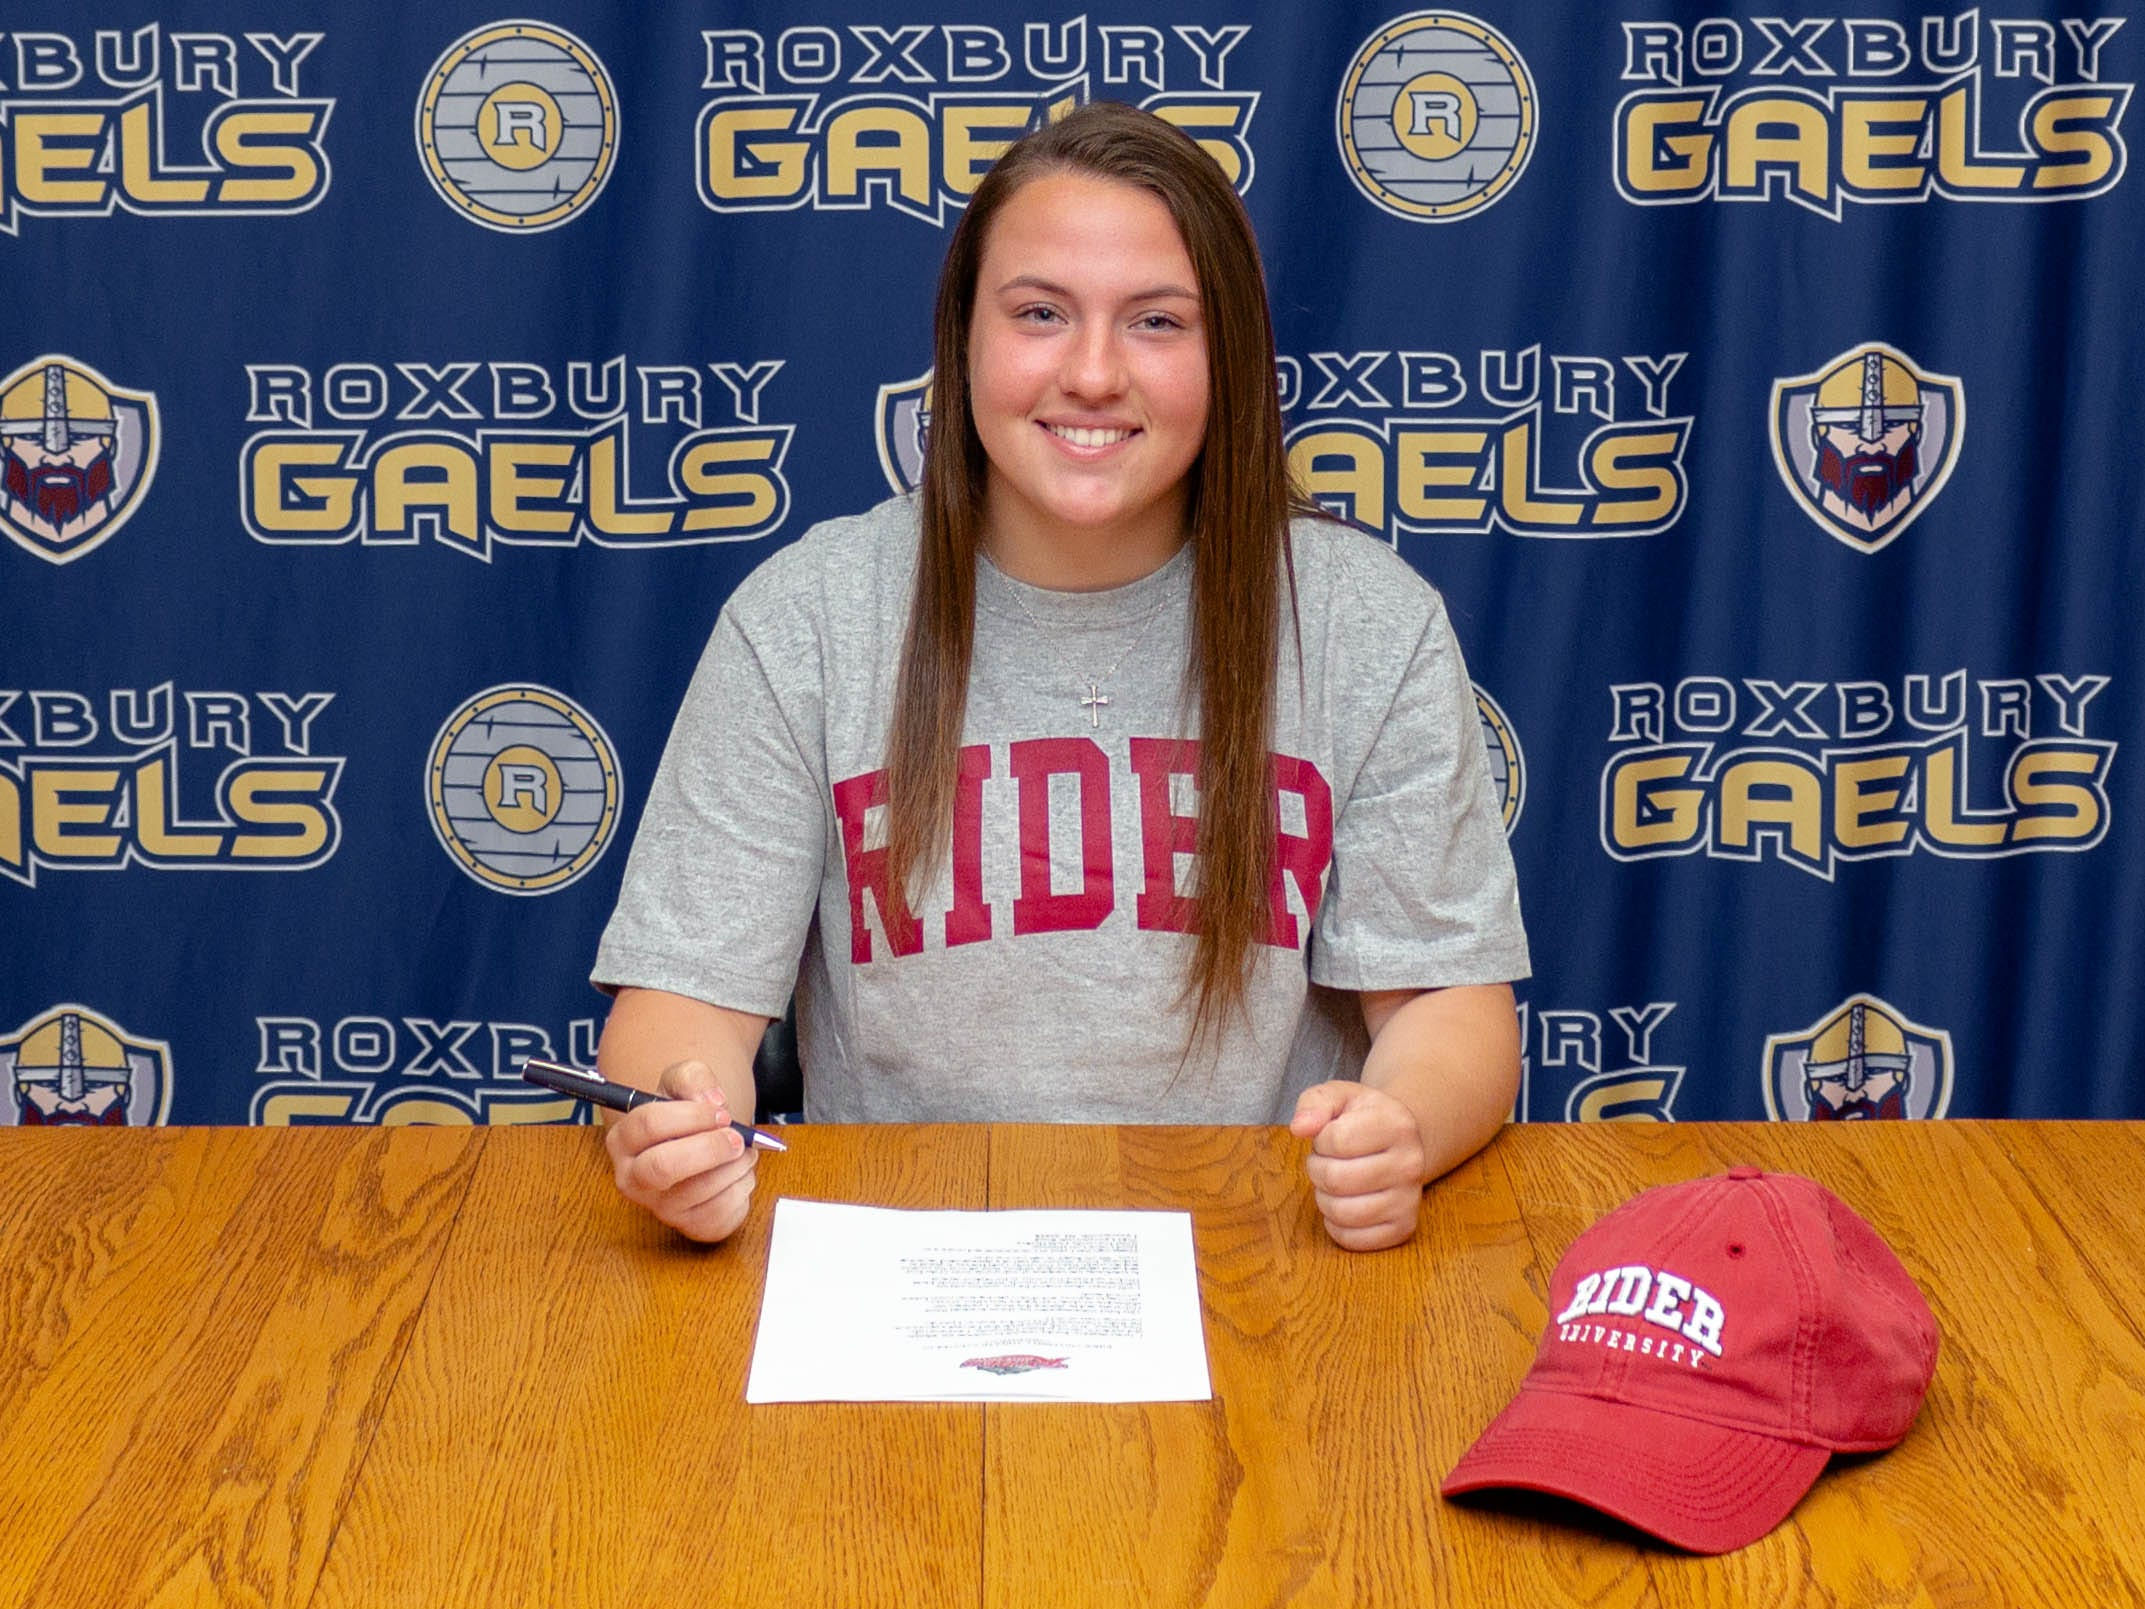 Roxbury senior Jenna Segrave signed a National Letter of Intent with Rider field hockey on Friday.